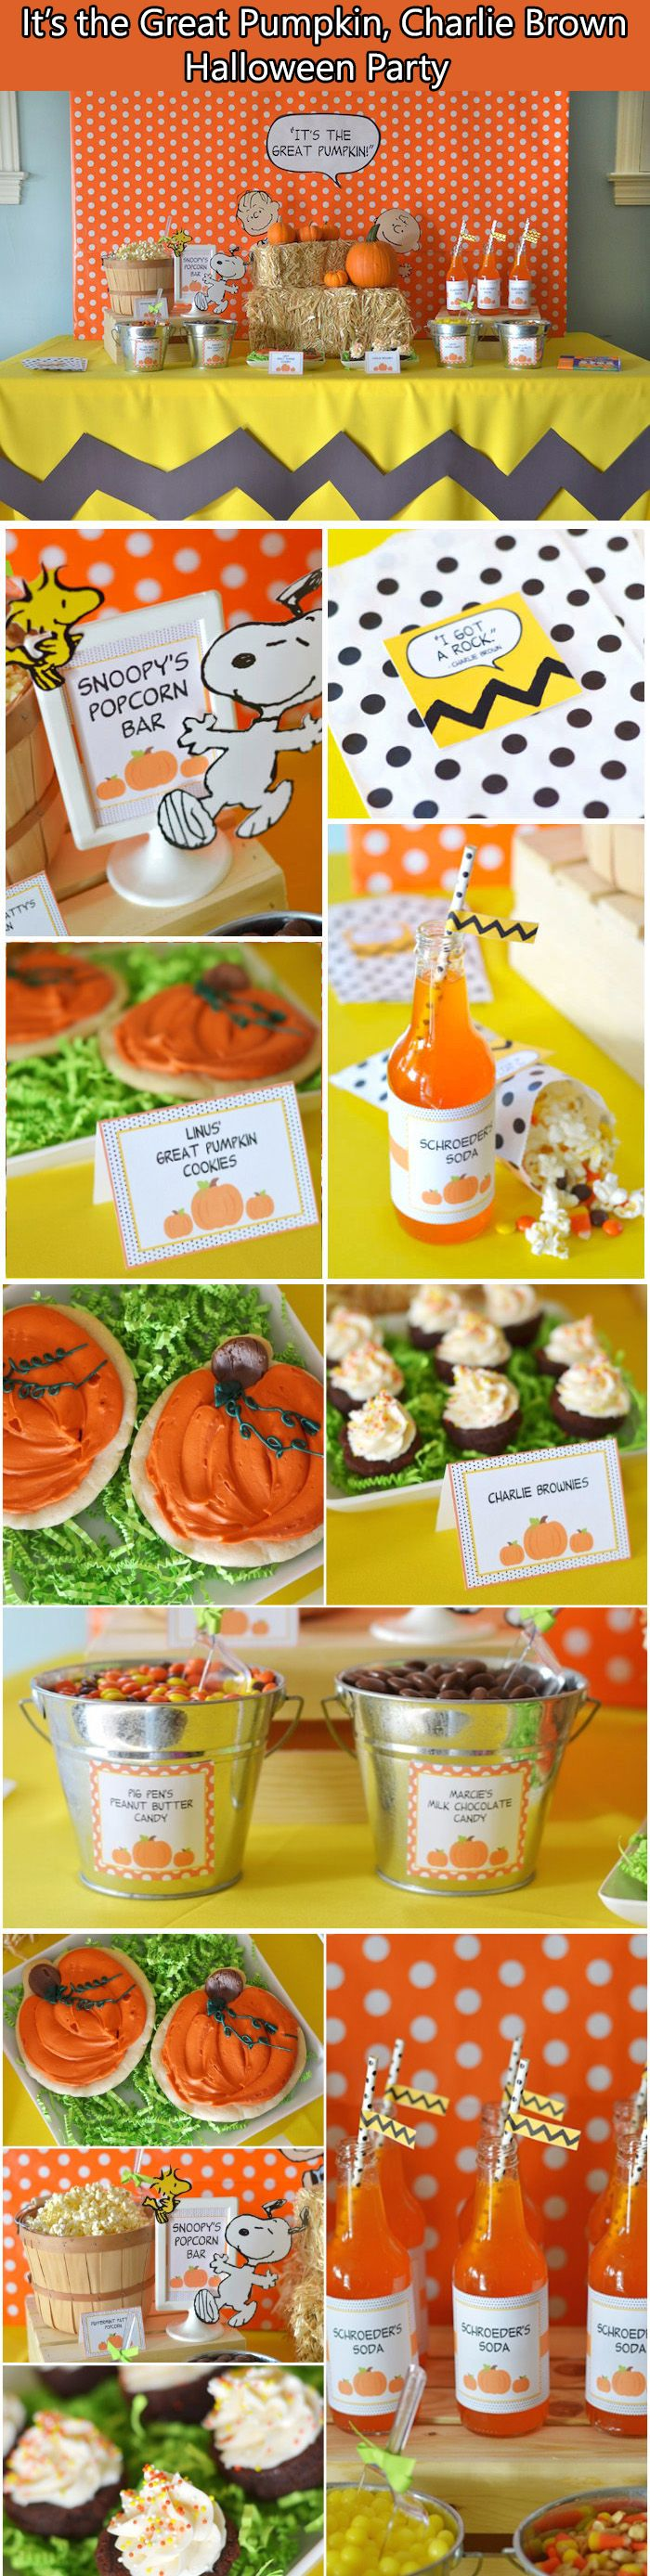 It's The Great Pumpkin, Charlie Brown Halloween Party.  Some great ideas! Look at that table cloth!